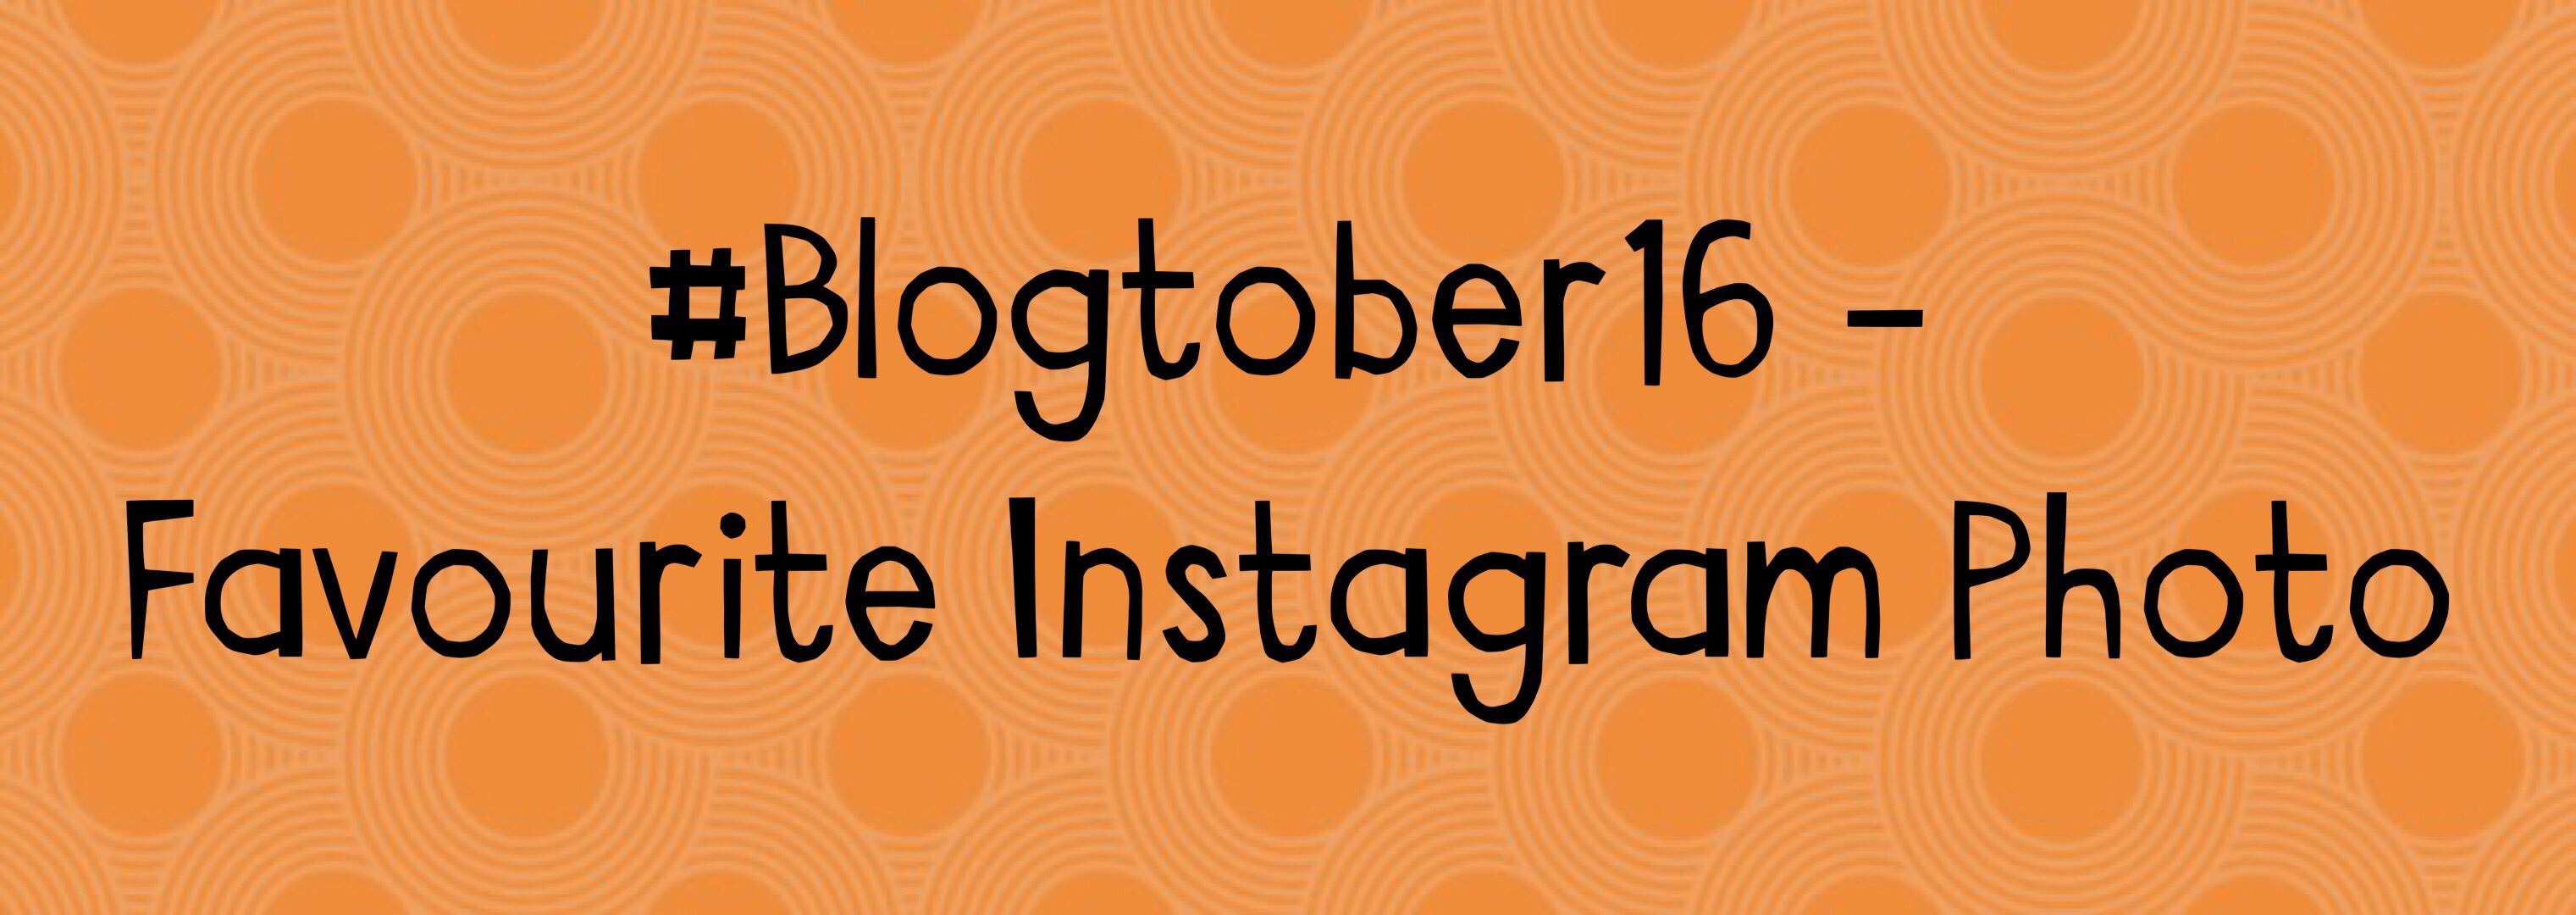 My Favourite Instagram Photo – #Blogtober16 Day 28